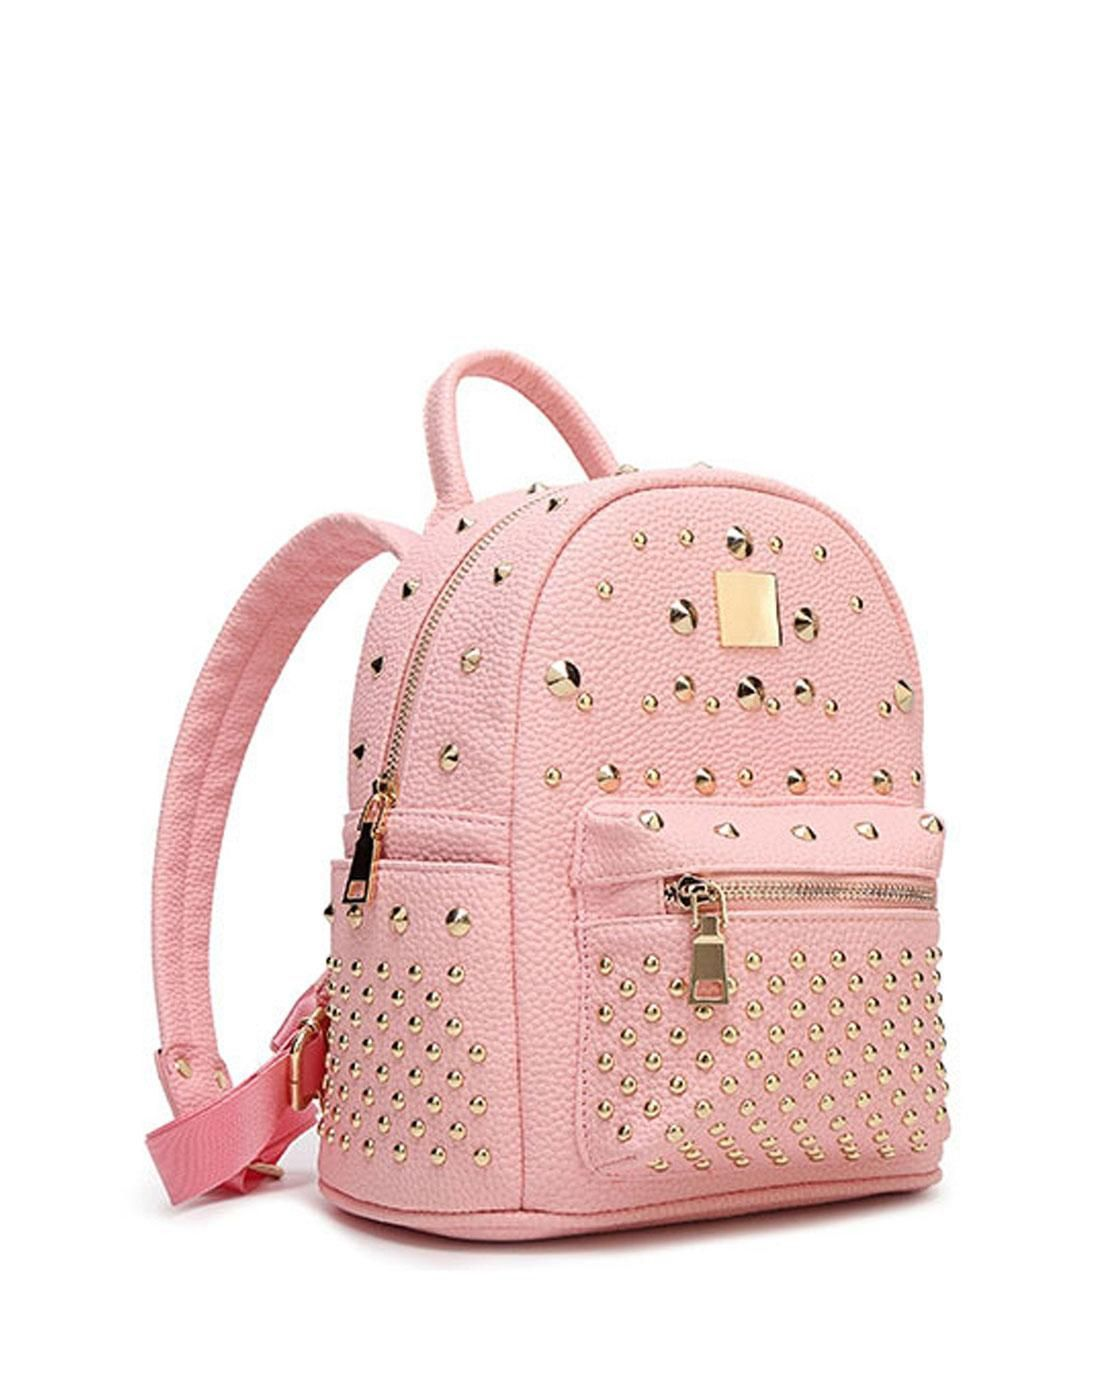 2903df16524f AdoreWe #VIPme Backpacks - SVMONO Pink School Bags Backpacks for ...